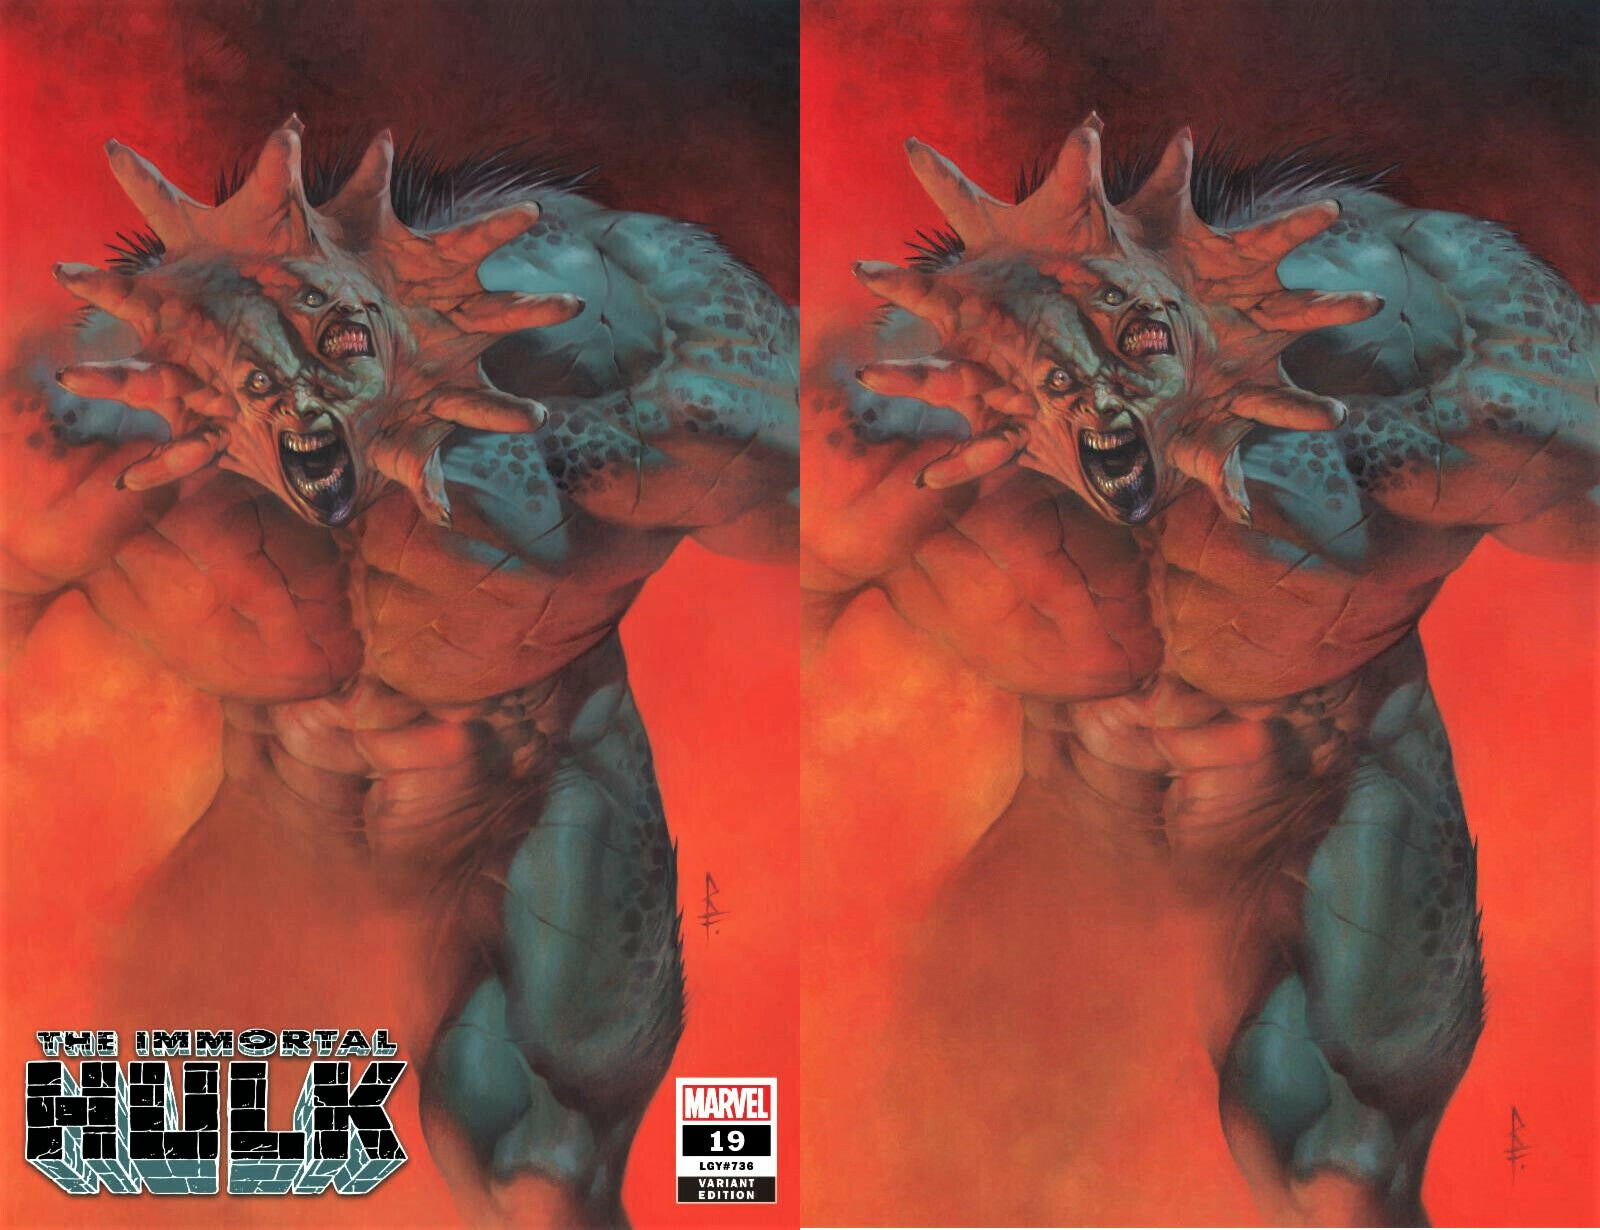 IMMORTAL HULK #19 RICCARDO FEDERICI EXCLUSIVE NEW ABOMINATION VIRGIN VARIANTS IMMORTAL Incredible Spider-man Marvel Comics Exclusive Green Hulk Red Hulk East Side Comics CGC